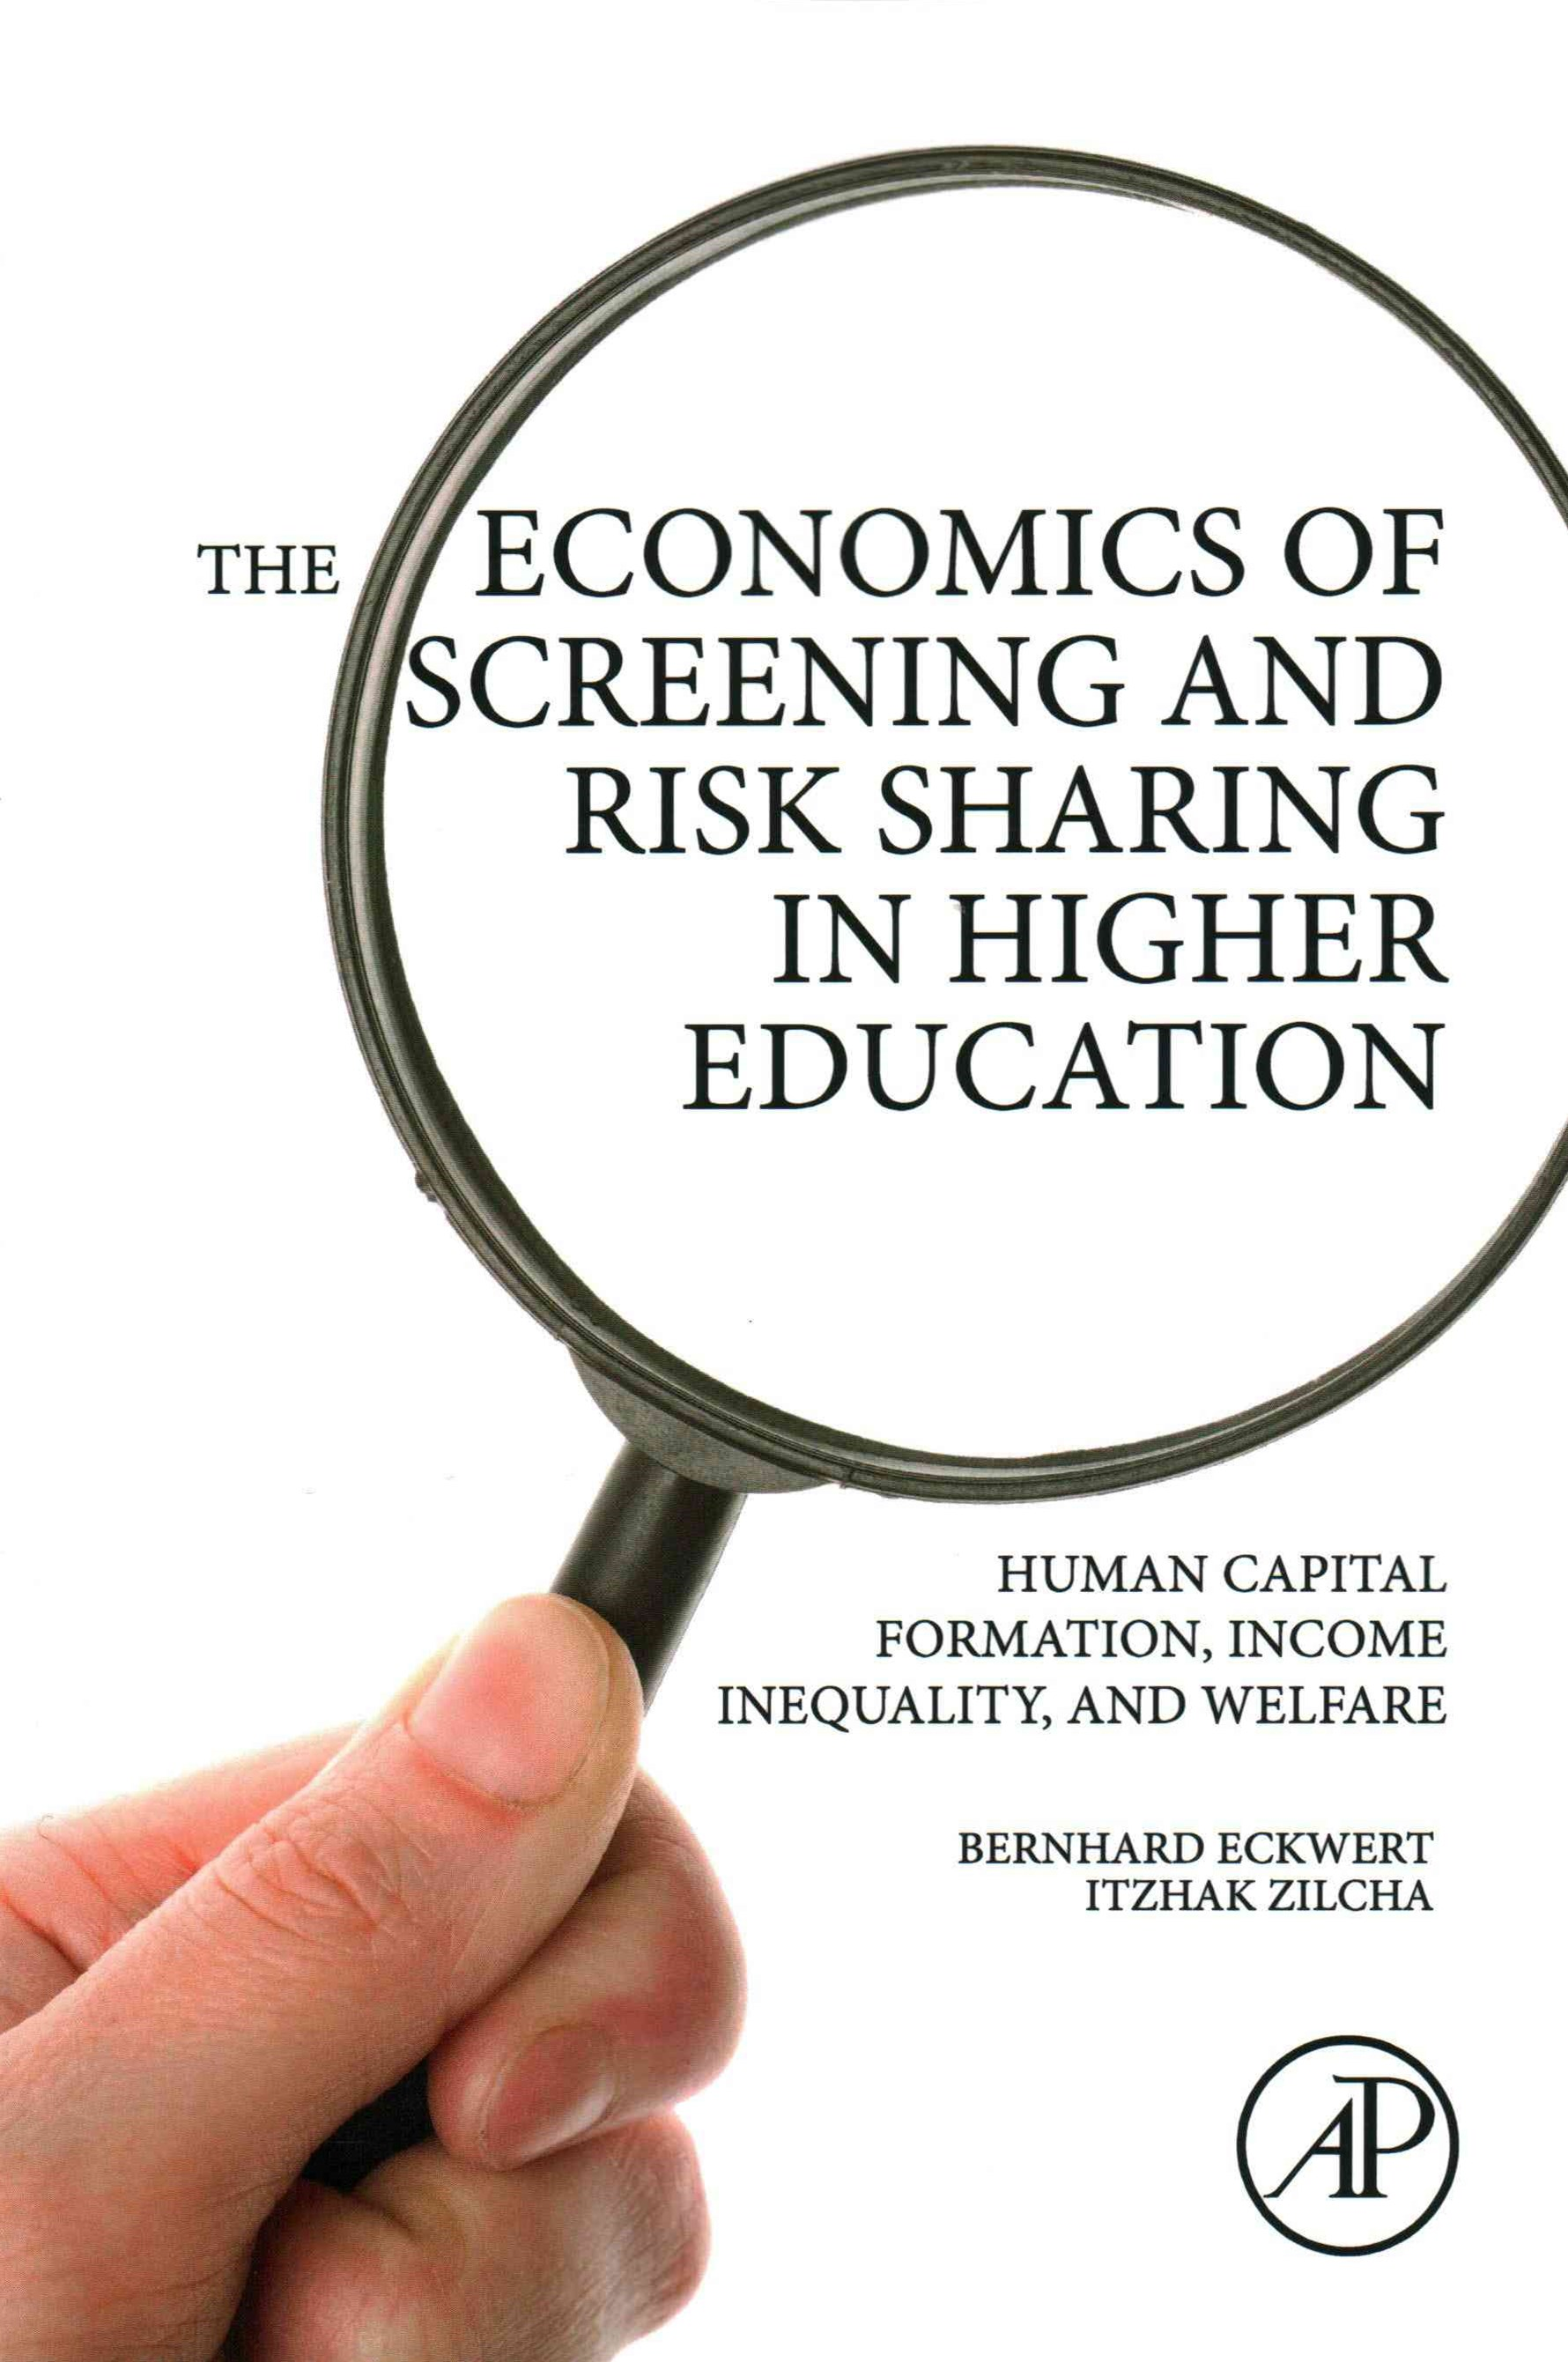 Economics of Screening and Risk Sharing in Higher Education